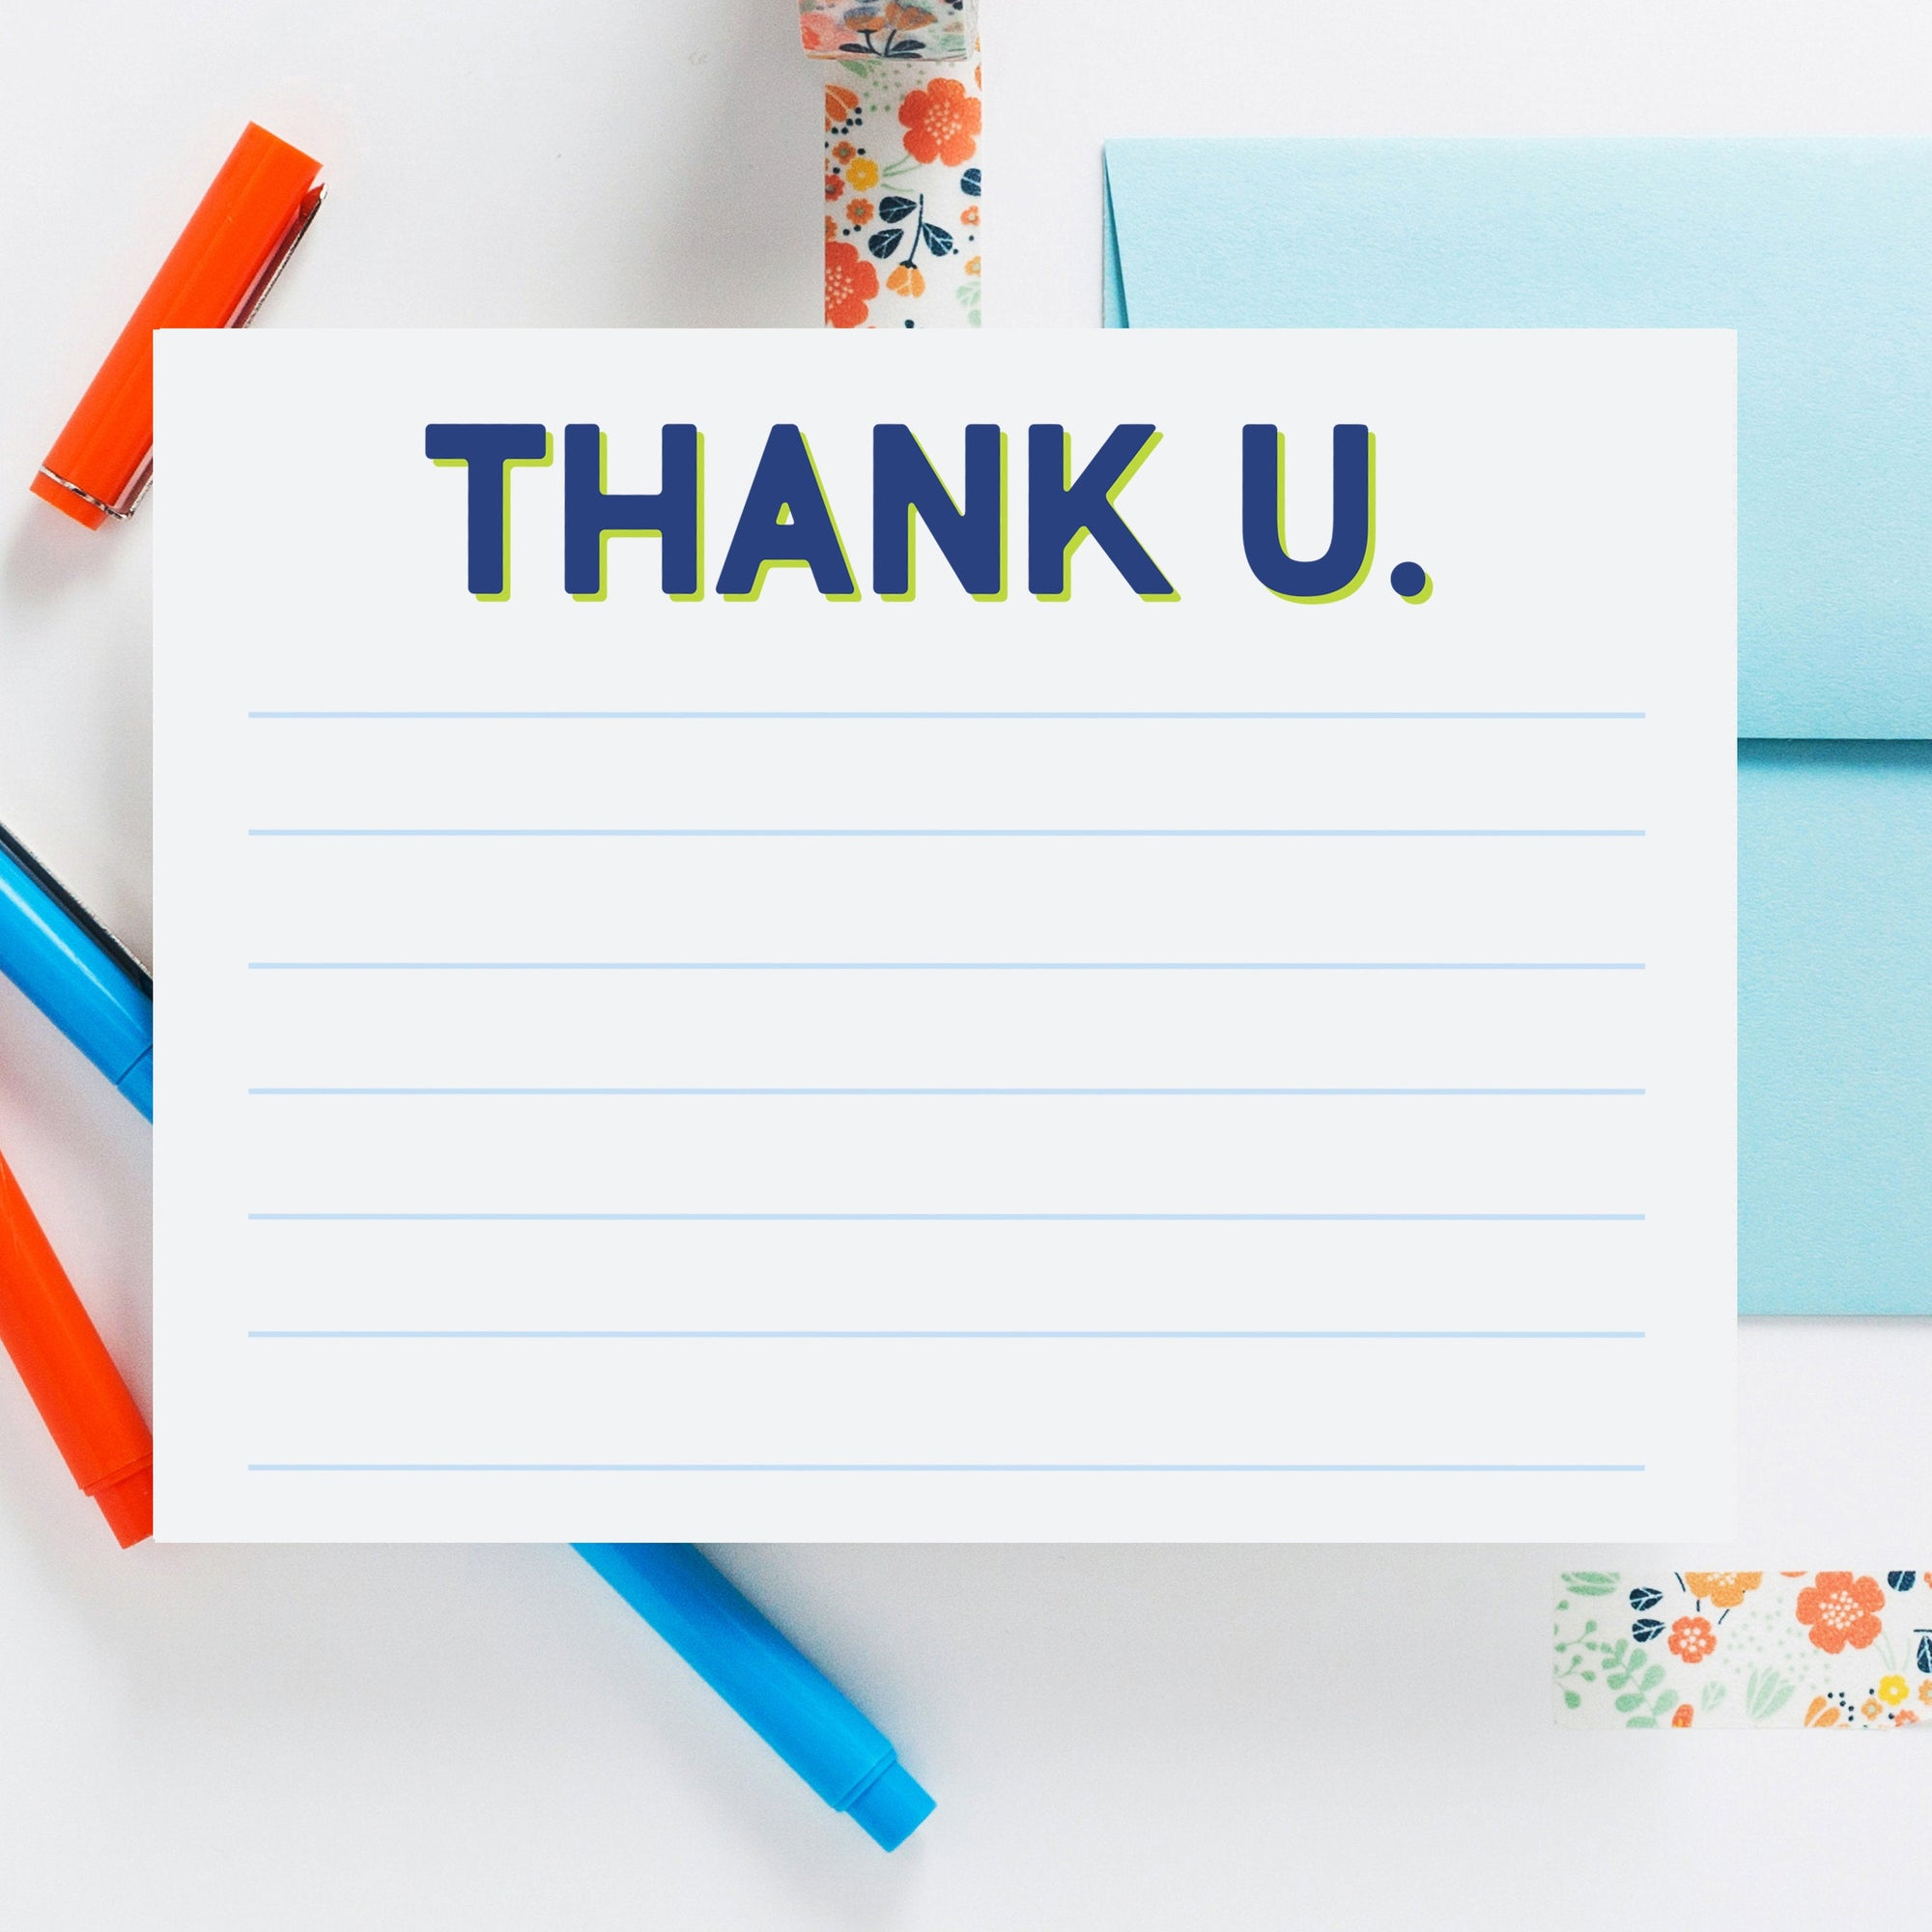 Thank U. Lined Blue Notecard, Kids Thank You Note, Colorful Notecard, Thank You Notes, Stationery, Gratitude Note Card 04ENC - Joy Creative Shop